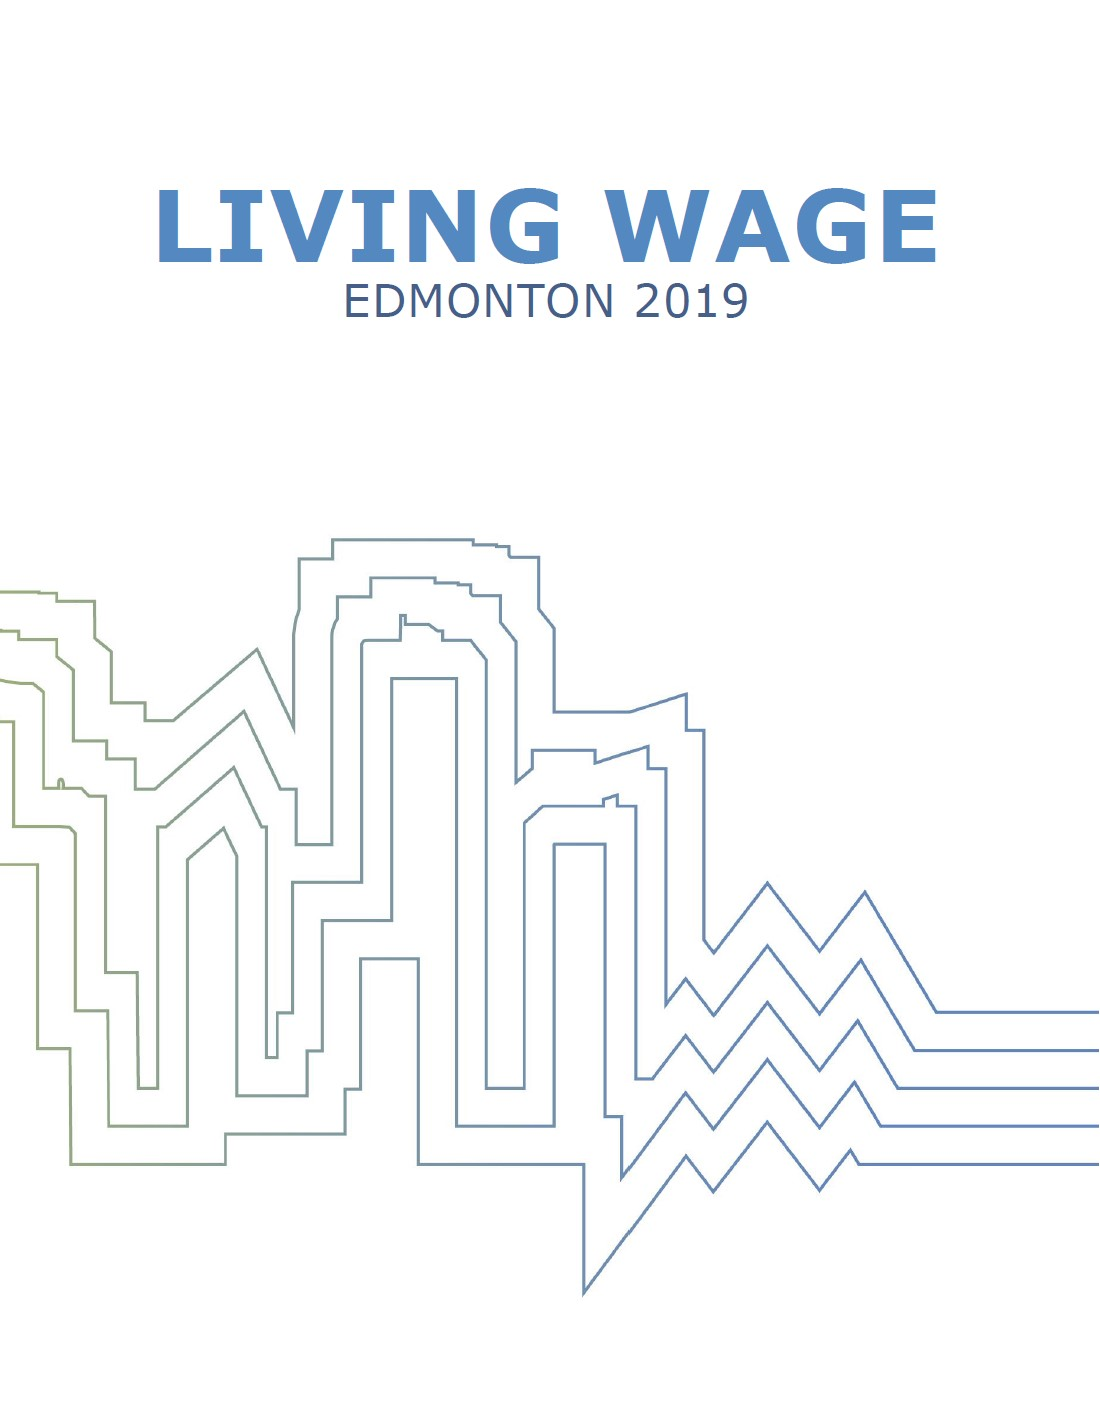 2019 living wage cover image.jpg